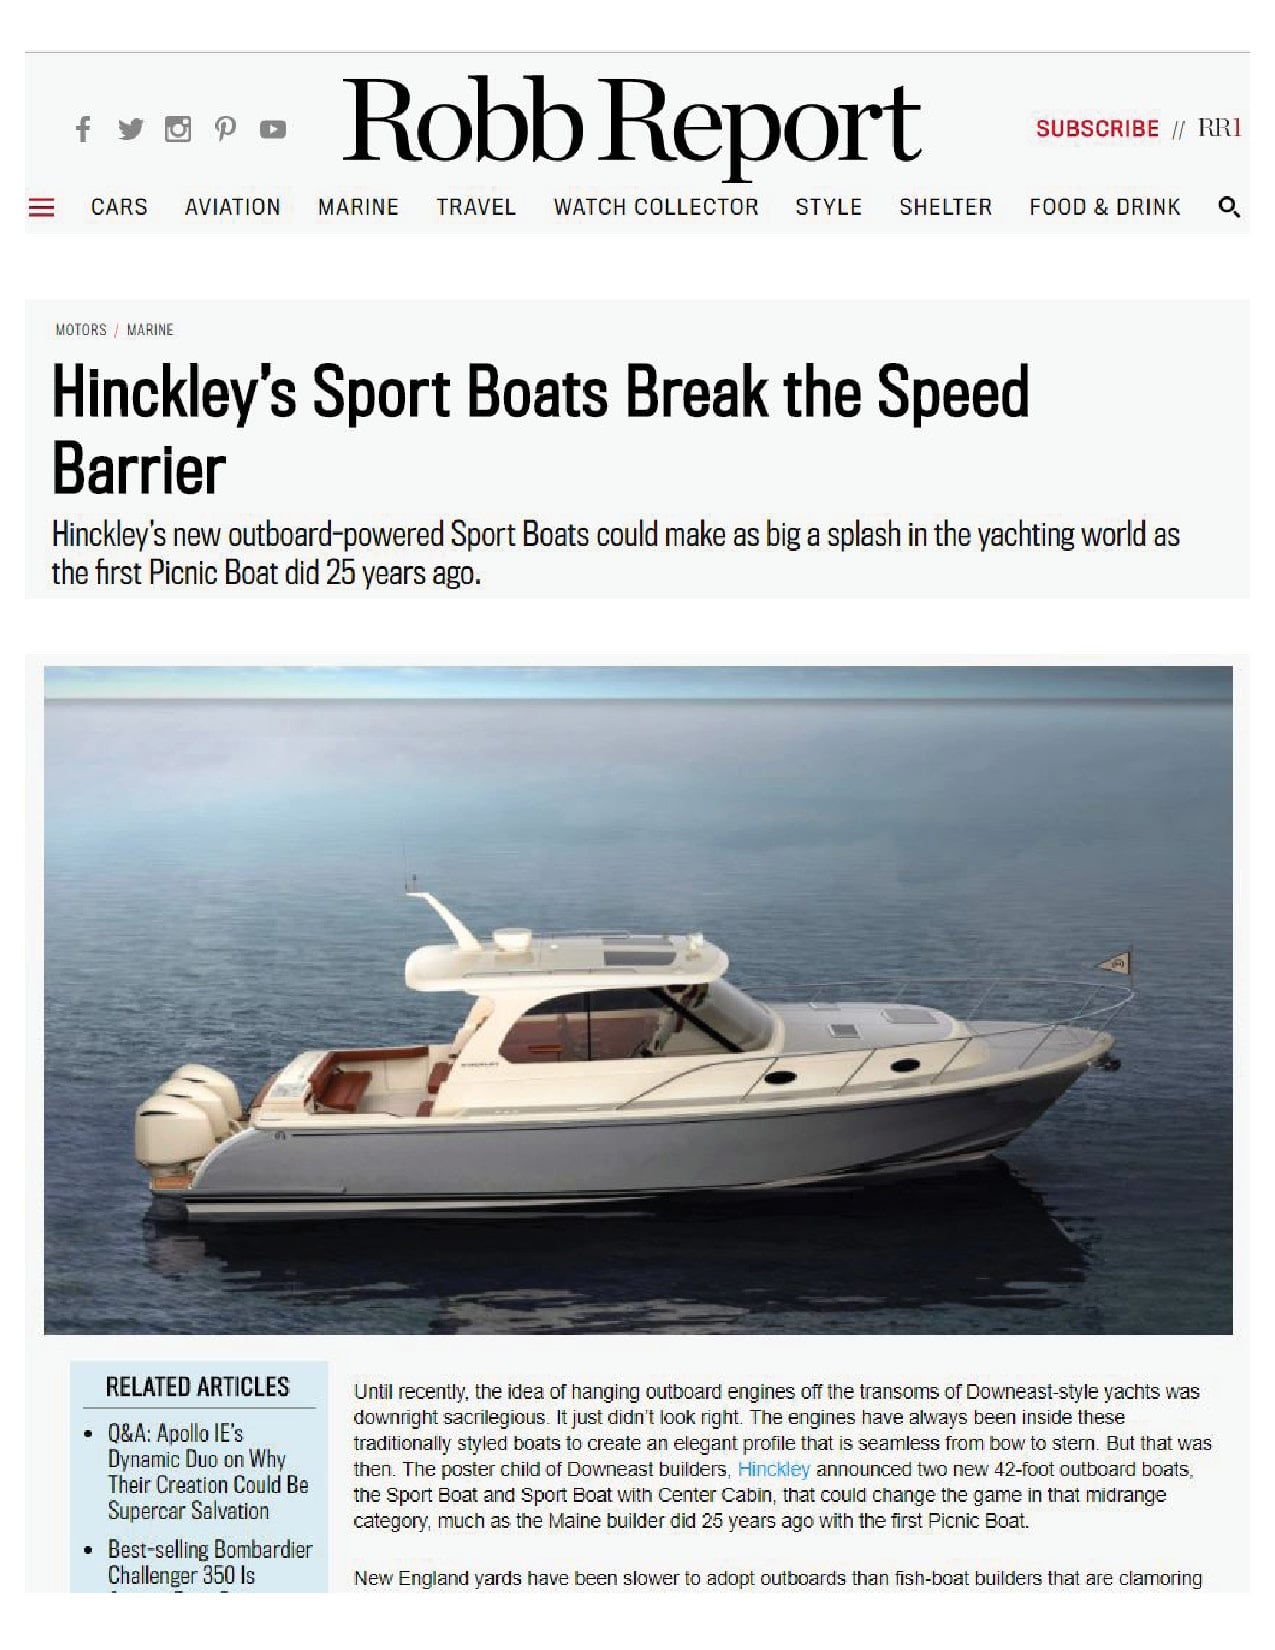 Hinckley Sport Boats Featured on Robb Report | March 2018